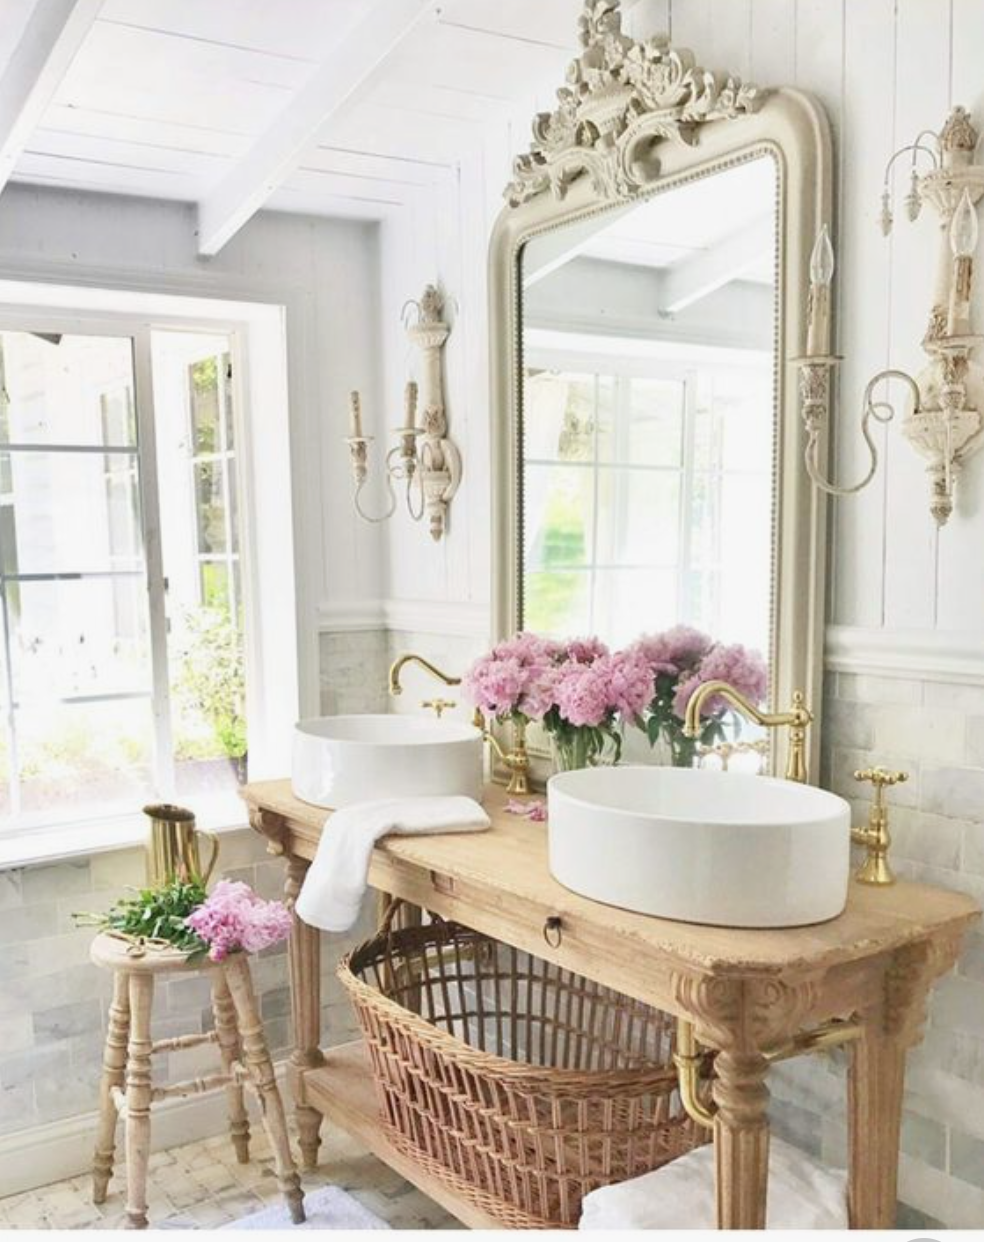 The 15 Most Beautiful Bathrooms On Pinterest Sanctuary Home Decor French Cottage Bathroom Country